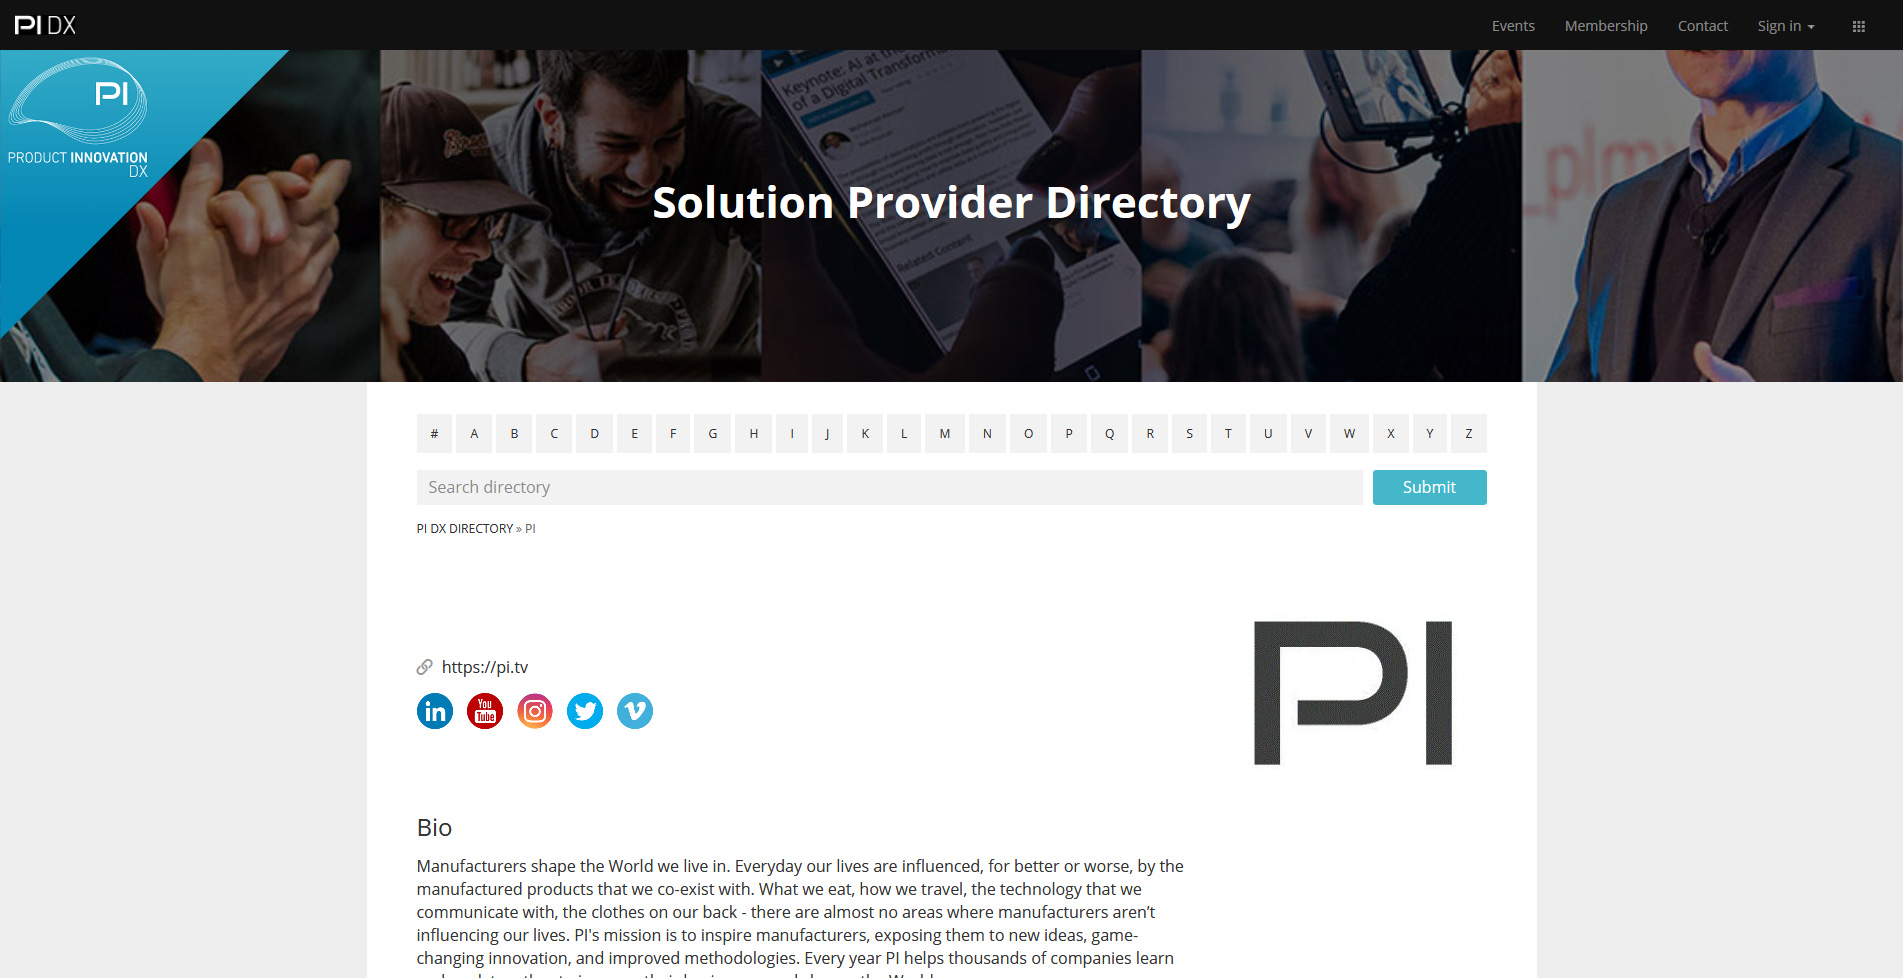 PI DX Solution Provider Directory